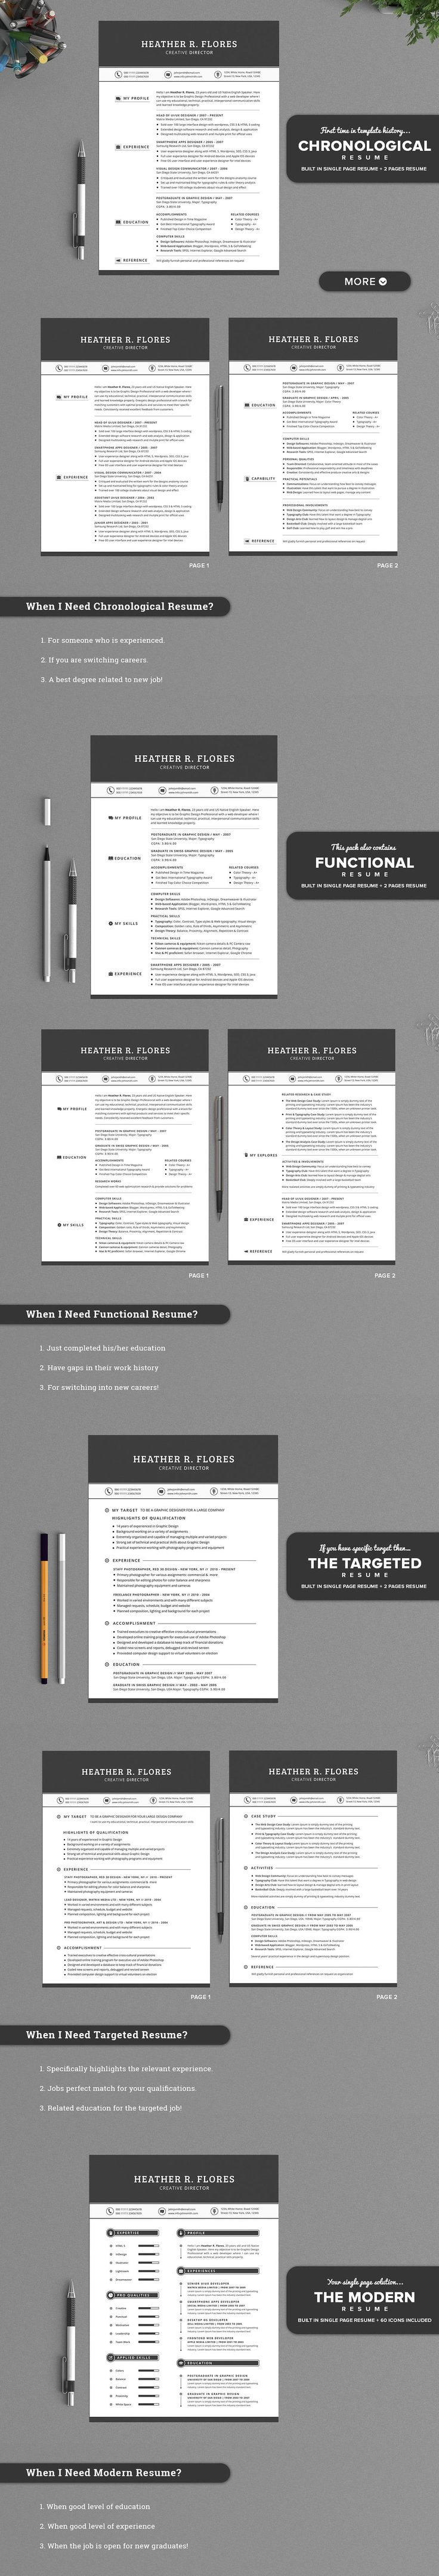 33 best CV images on Pinterest | Cv template, Page layout and Resume ...